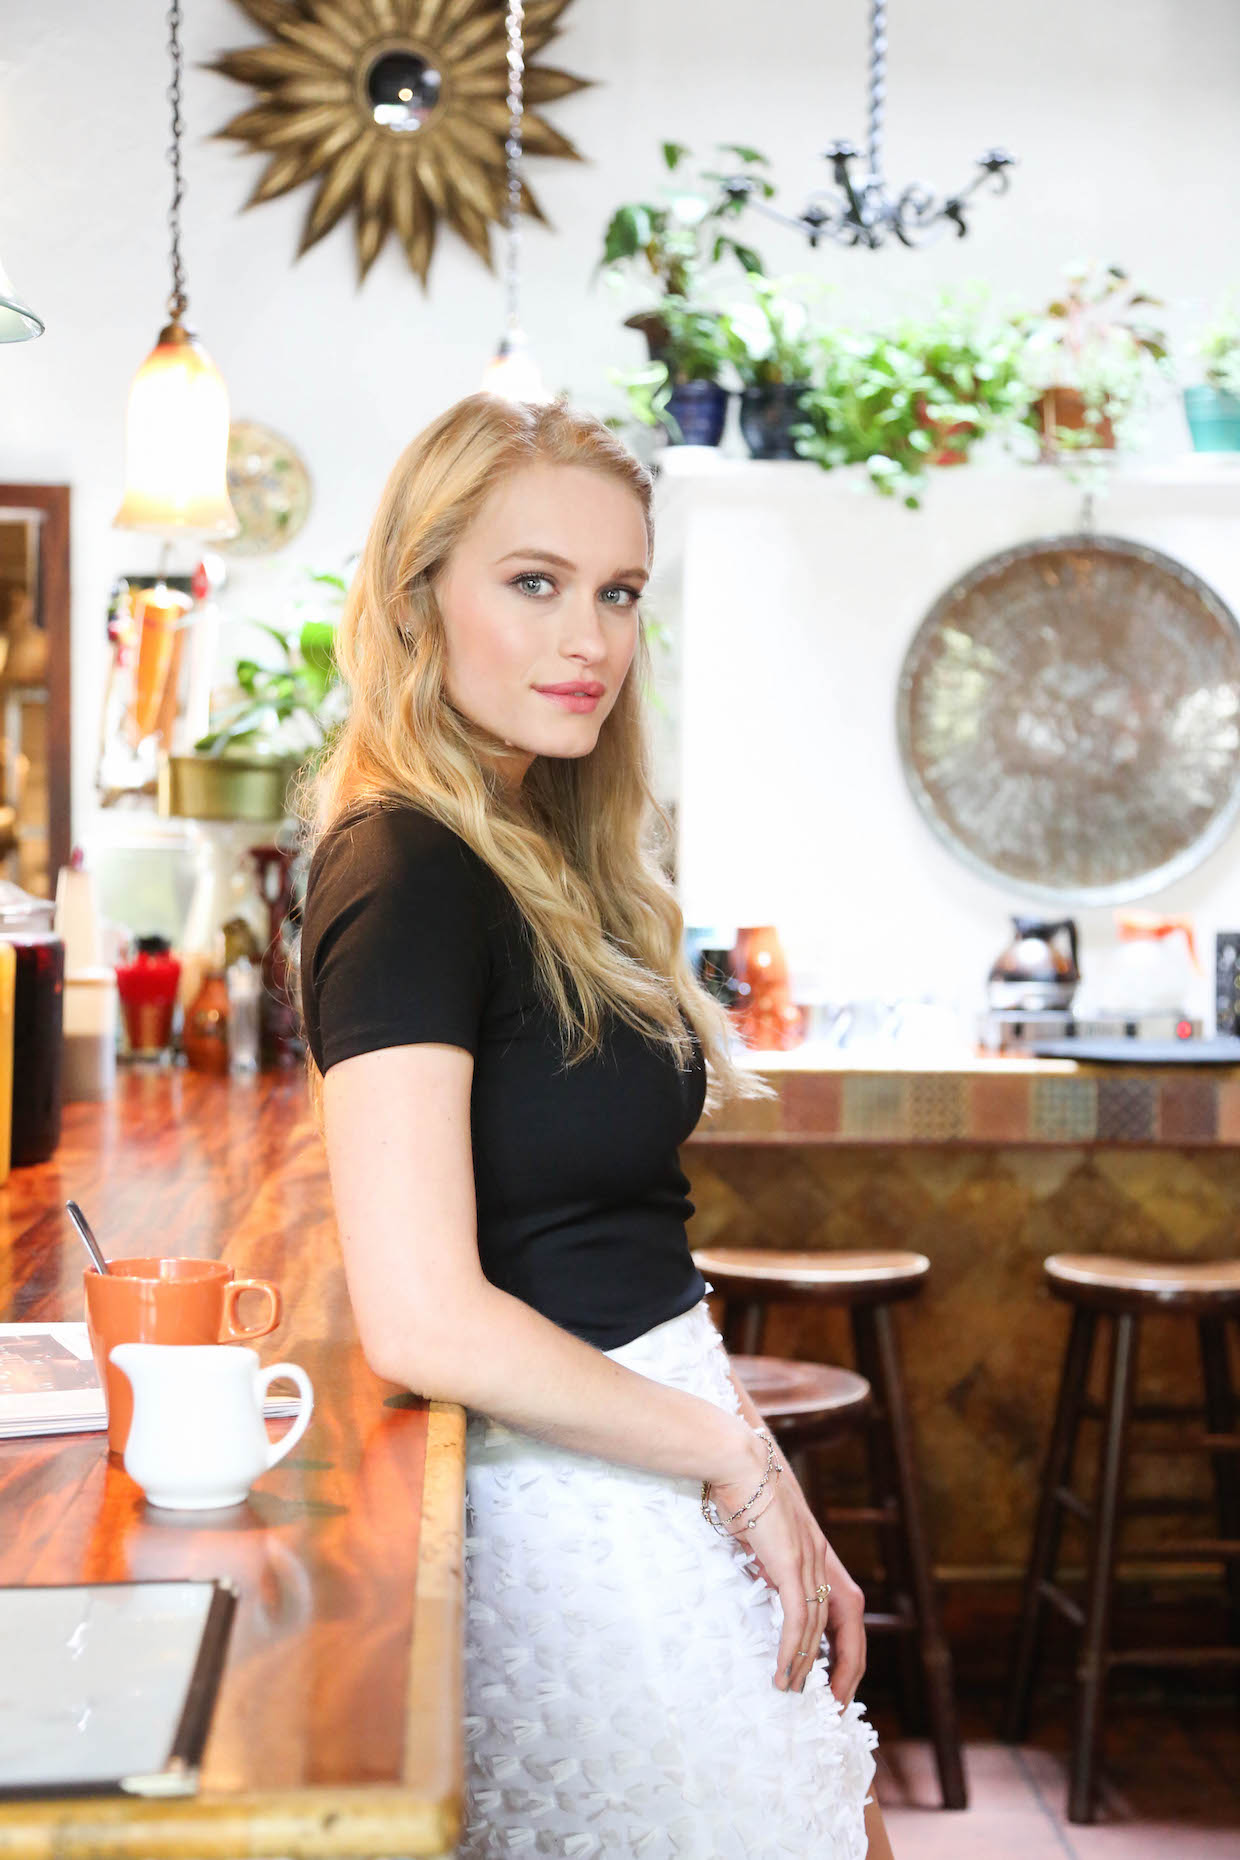 leven-rambin-pictures-2015